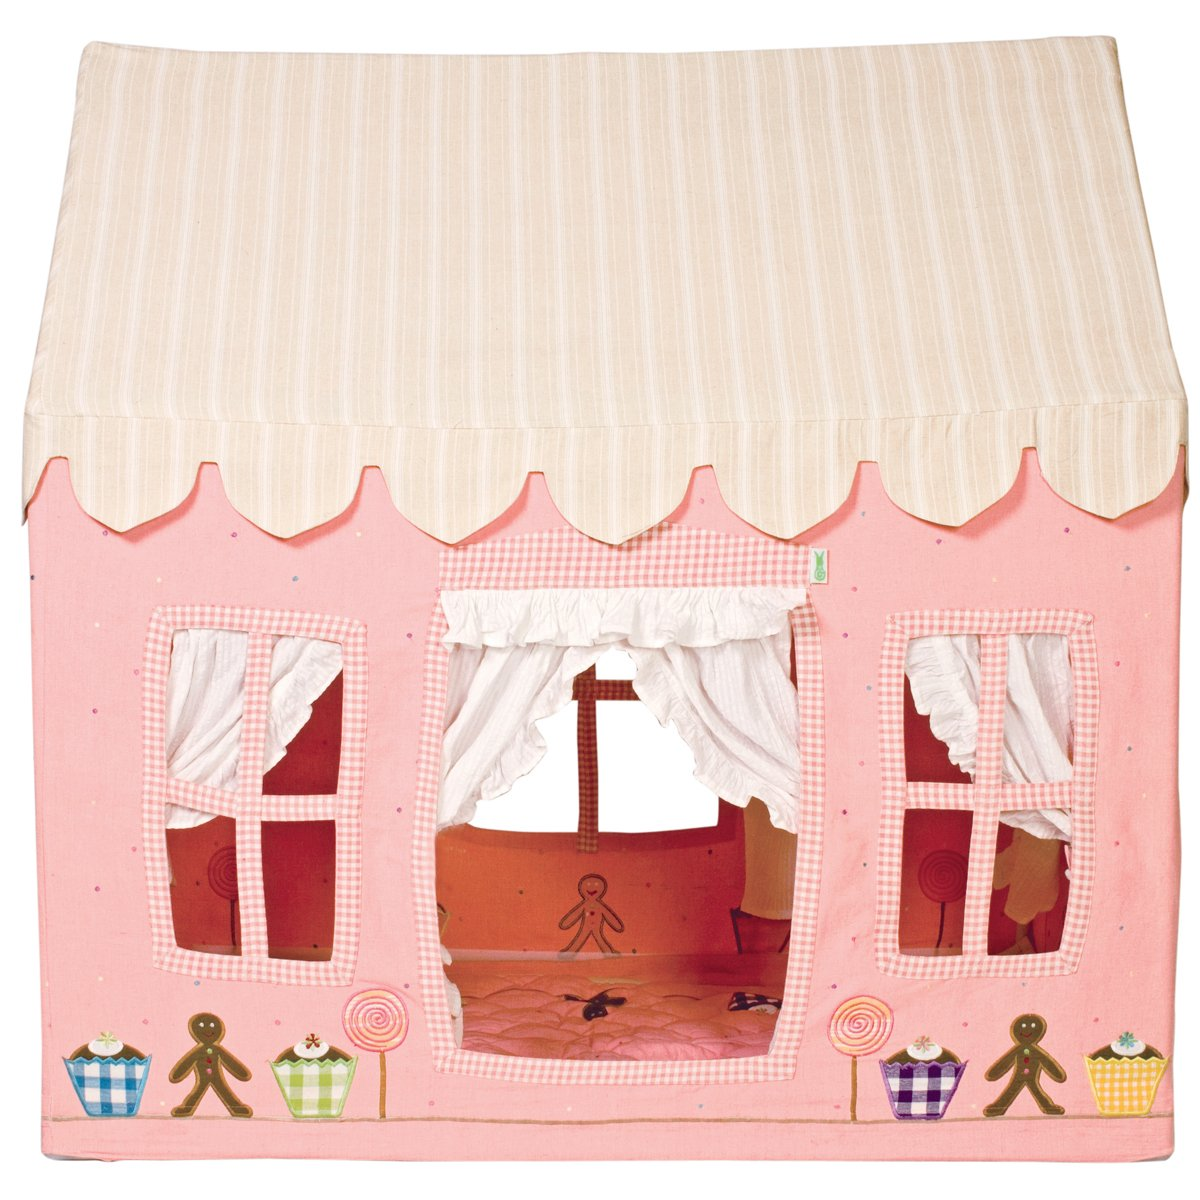 Win Green SMALL GINGERBREAD COTTAGE: Amazon.co.uk: Toys & Games